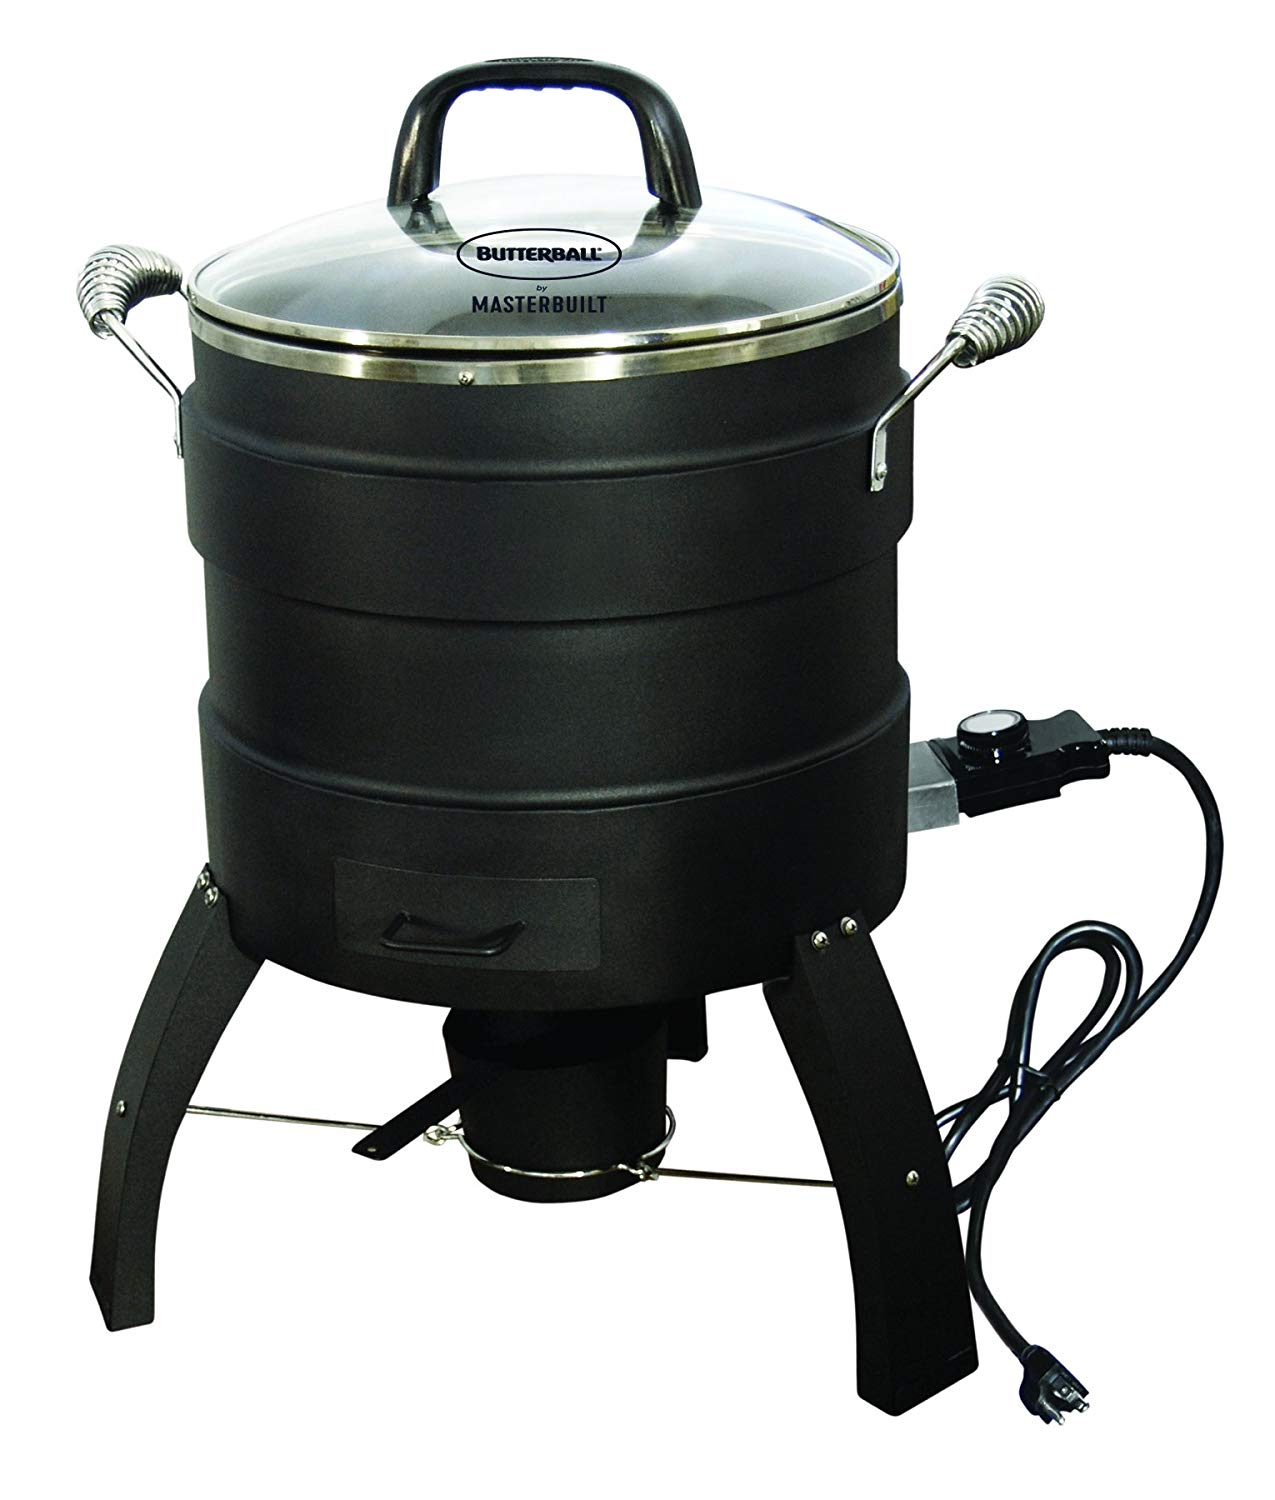 Masterbuilt Butterball Electric Oil Free Turkey Roaster and Fryer